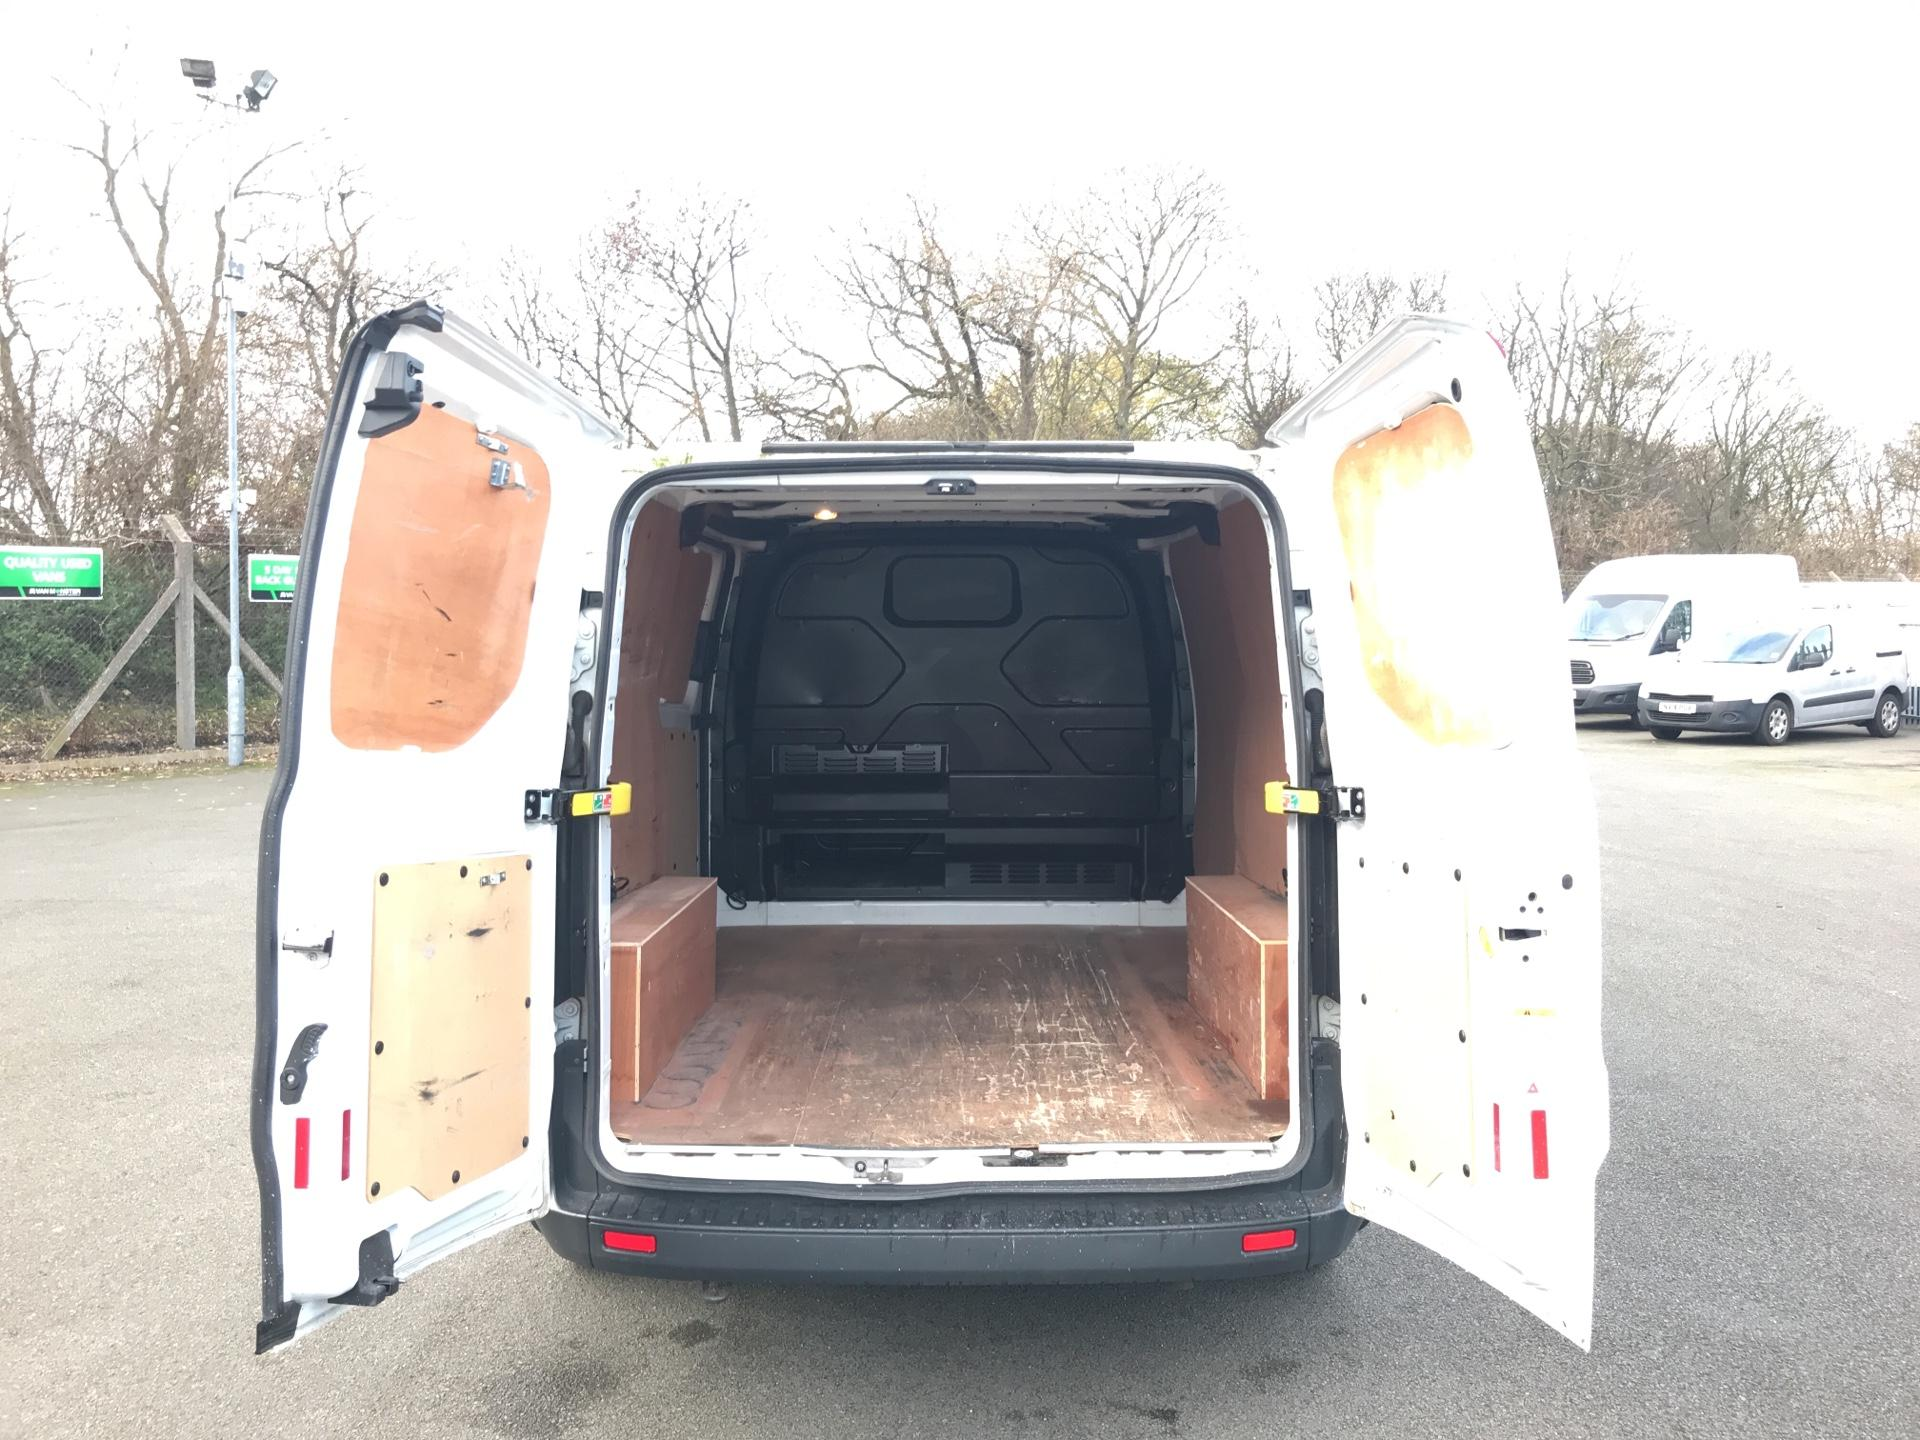 2015 Ford Transit Custom 290 L1 DIESEL FWD 2.2  TDCI 100PS LOW ROOF VAN EURO 5 *VALUE RANGE VEHICLE - CONDITION REFLECTED IN PRICE* (NK15XRE) Image 16